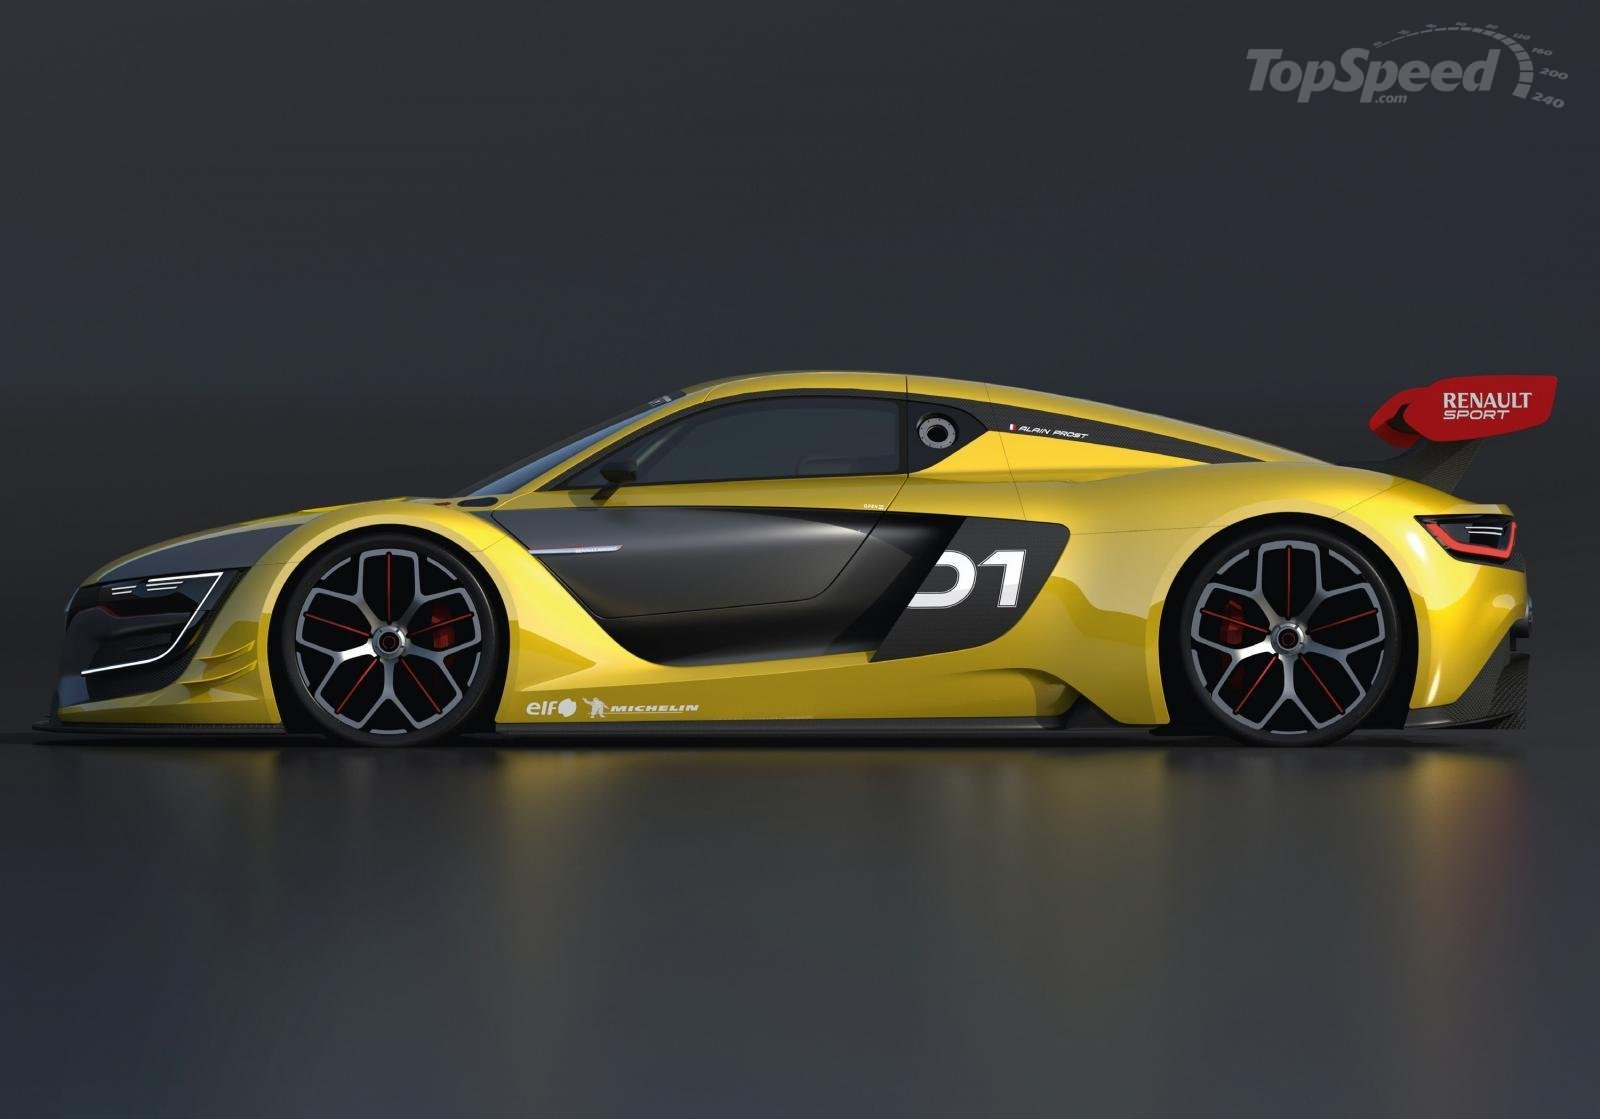 2015 Renault Sport RS 01 photo - 1